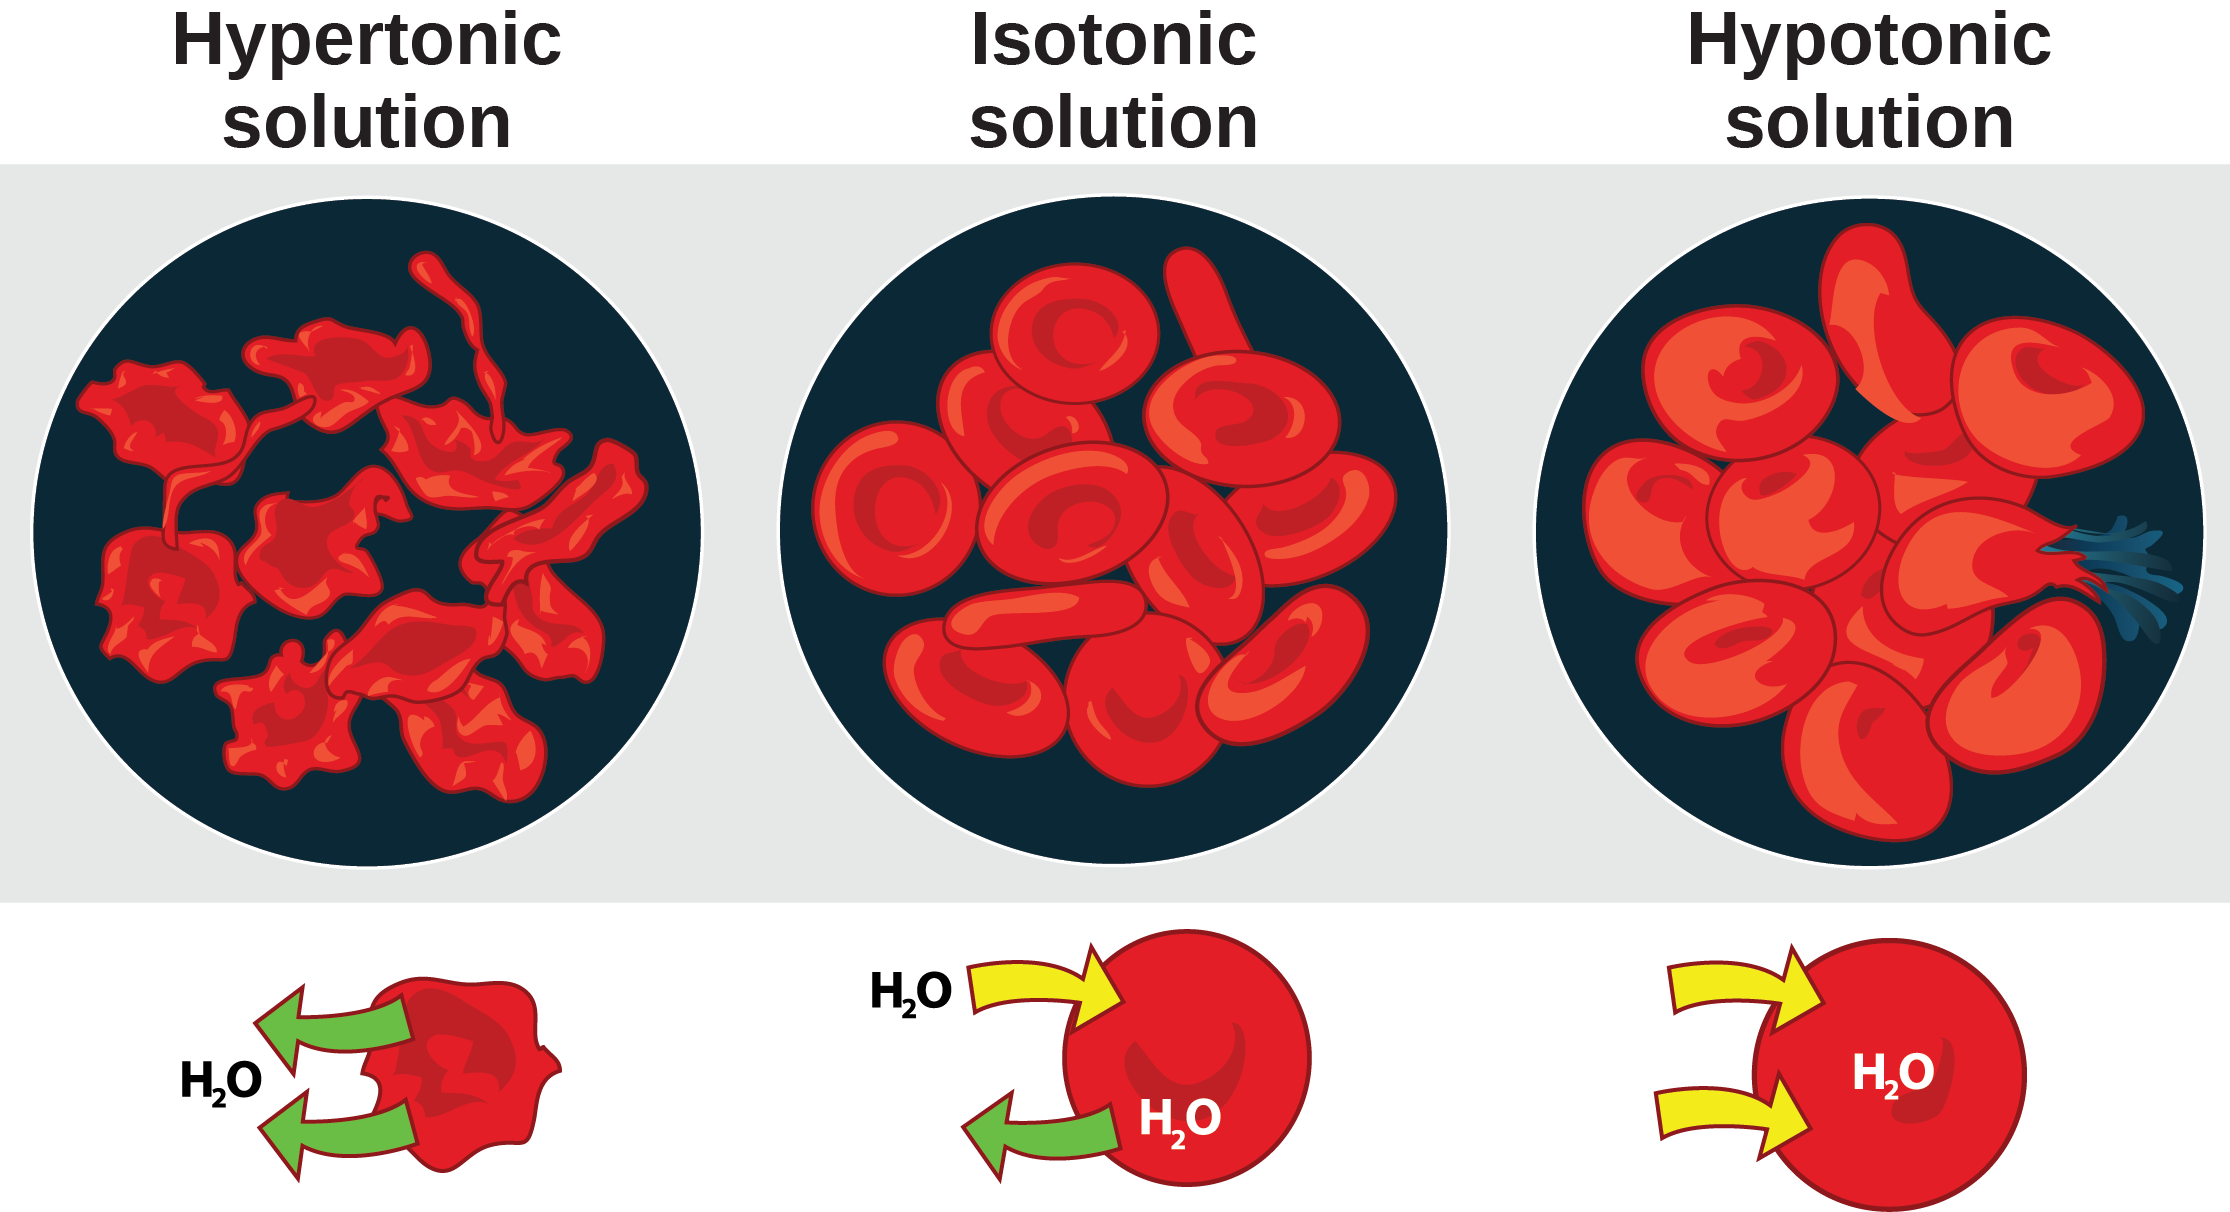 The left part of this illustration shows shriveled red blood cells bathed in a hypertonic solution. Below this, an diagram shows that upper case H subscript 2 baseline upper case O is leaving the red blood cell. The middle part shows healthy red blood cells bathed in an isotonic solution. A diagram below this shows upper H subscript 2 baseline upper O both entering and exiting the cell. And the right part shows bloated red blood cells bathed in a hypotonic solution. One of the bloated cells in the hypotonic solution bursts. A diagram below this shows upper H subscript 2 baseline upper O enterning the cell.